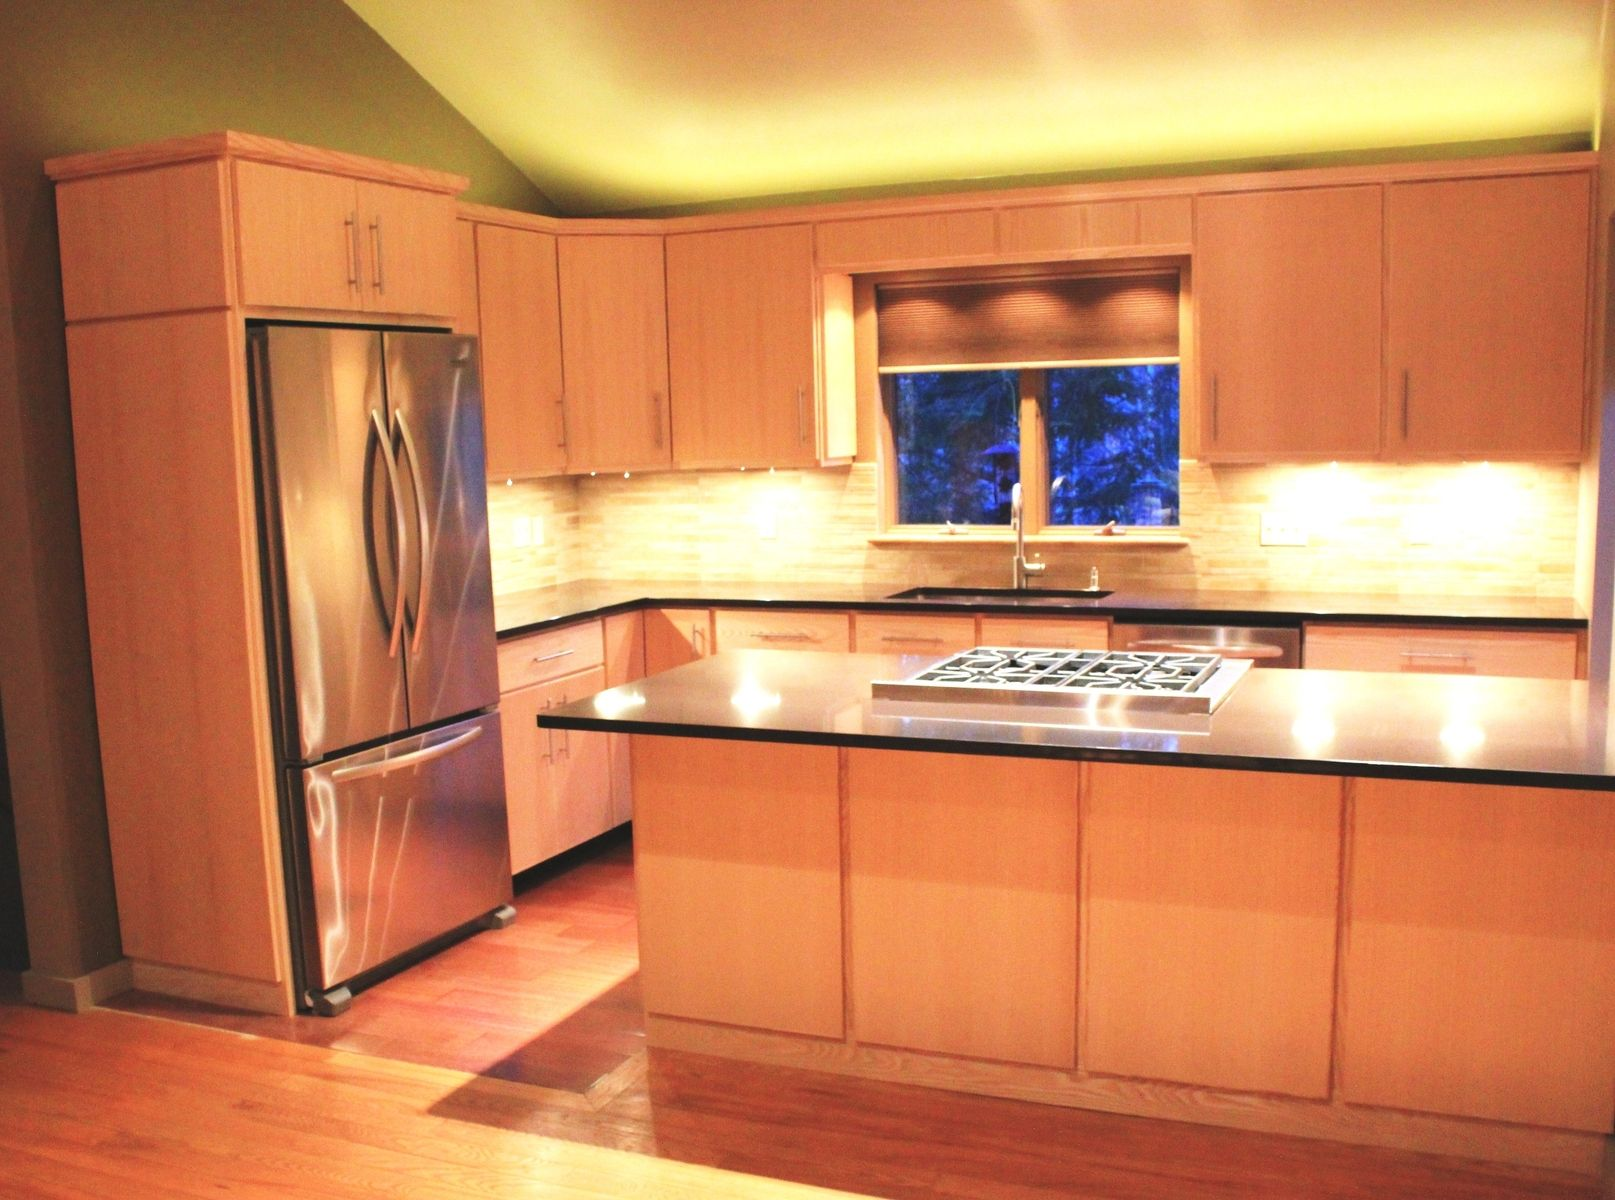 Hand crafted custom ash kitchen cabinets by blue spruce for Furniture kitchen cabinets